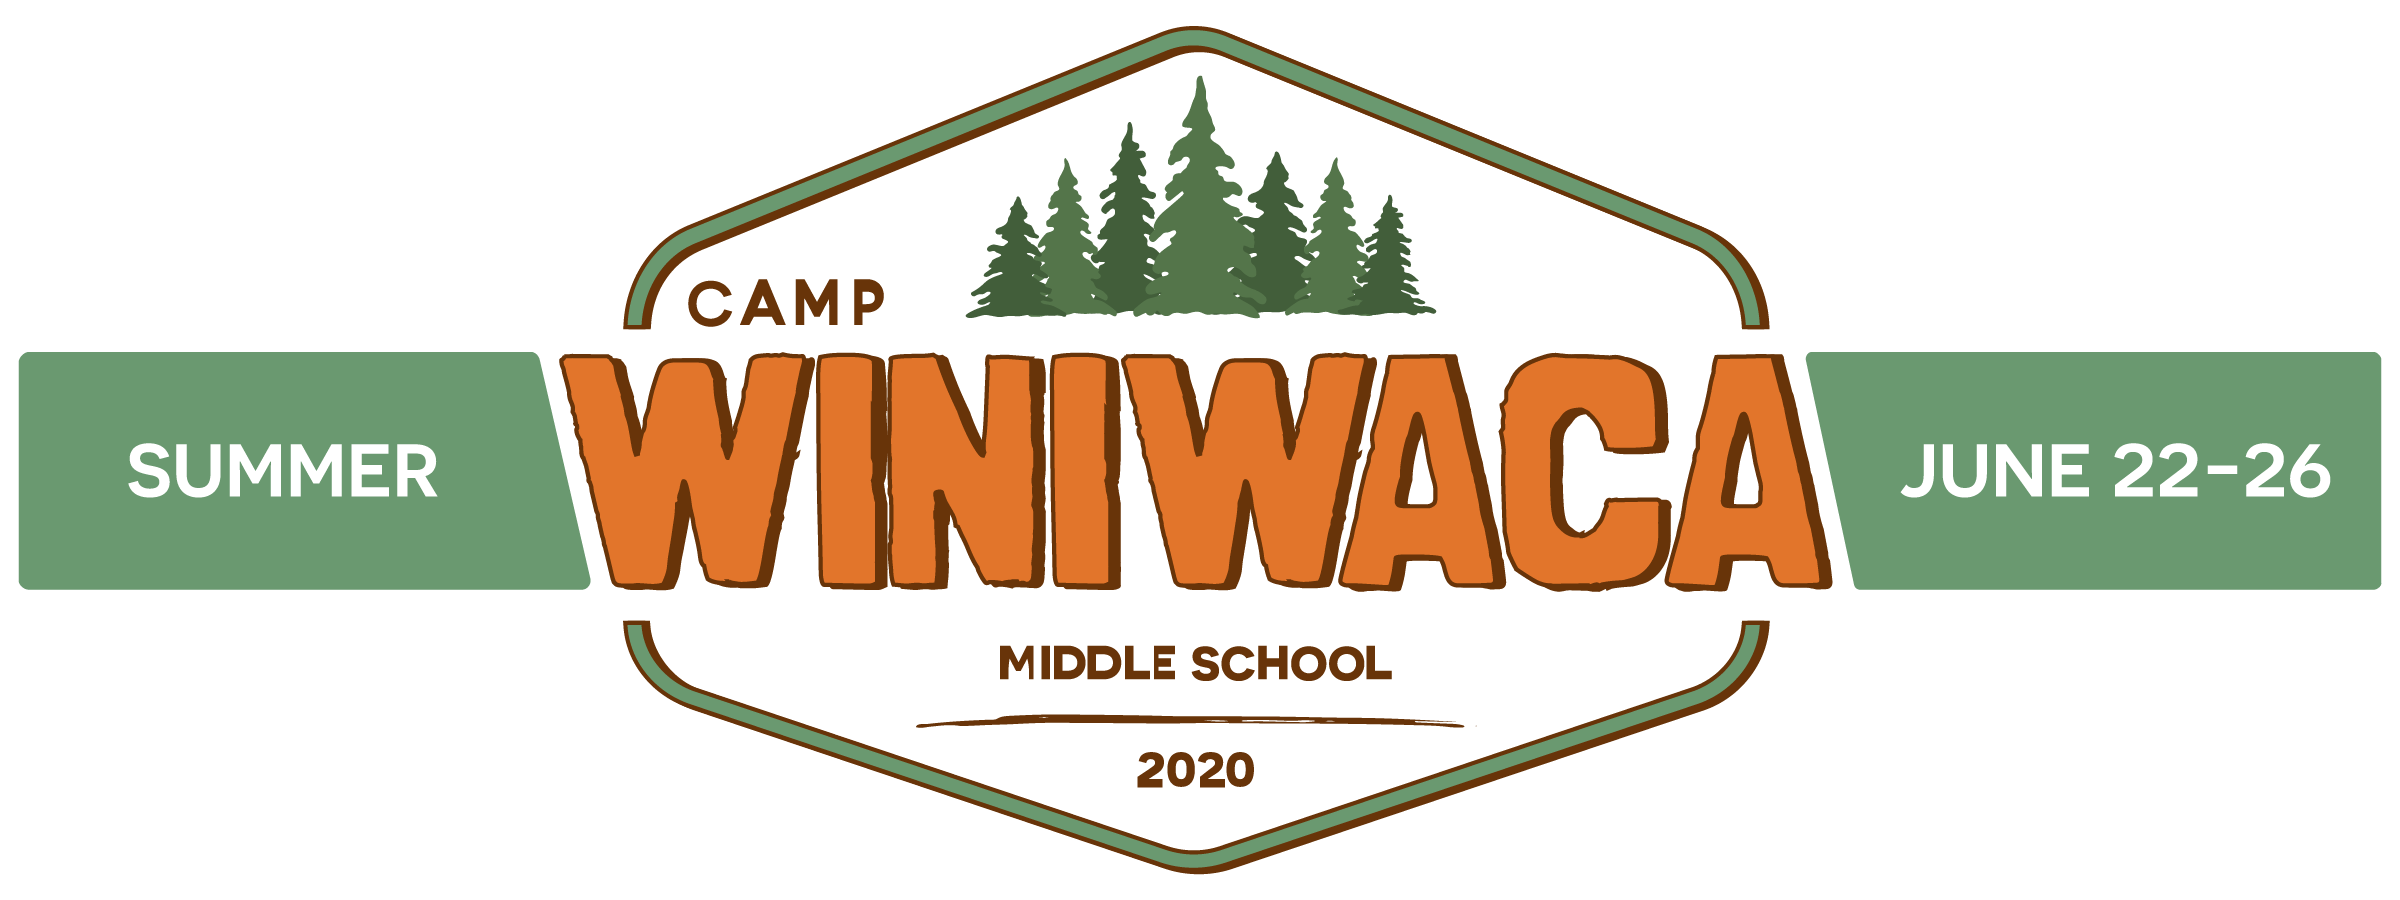 Camp_Web title Page-01.png